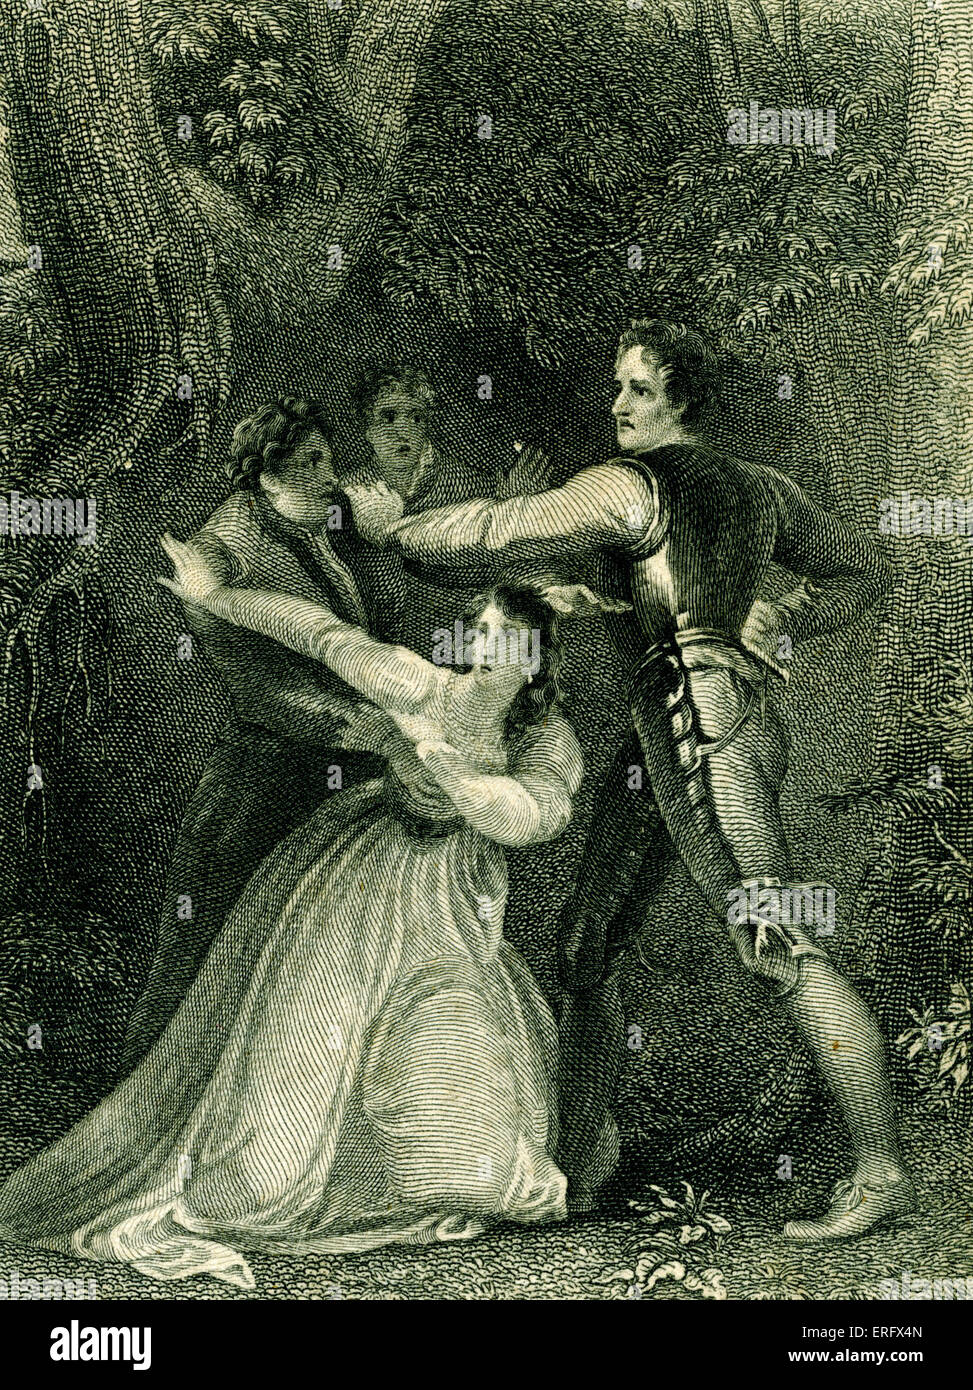 William Shakespeare - Two Gentlemen of Verona - comedy.  In the woods. Painting by Stothard, engraving by Rogers. - Stock Image